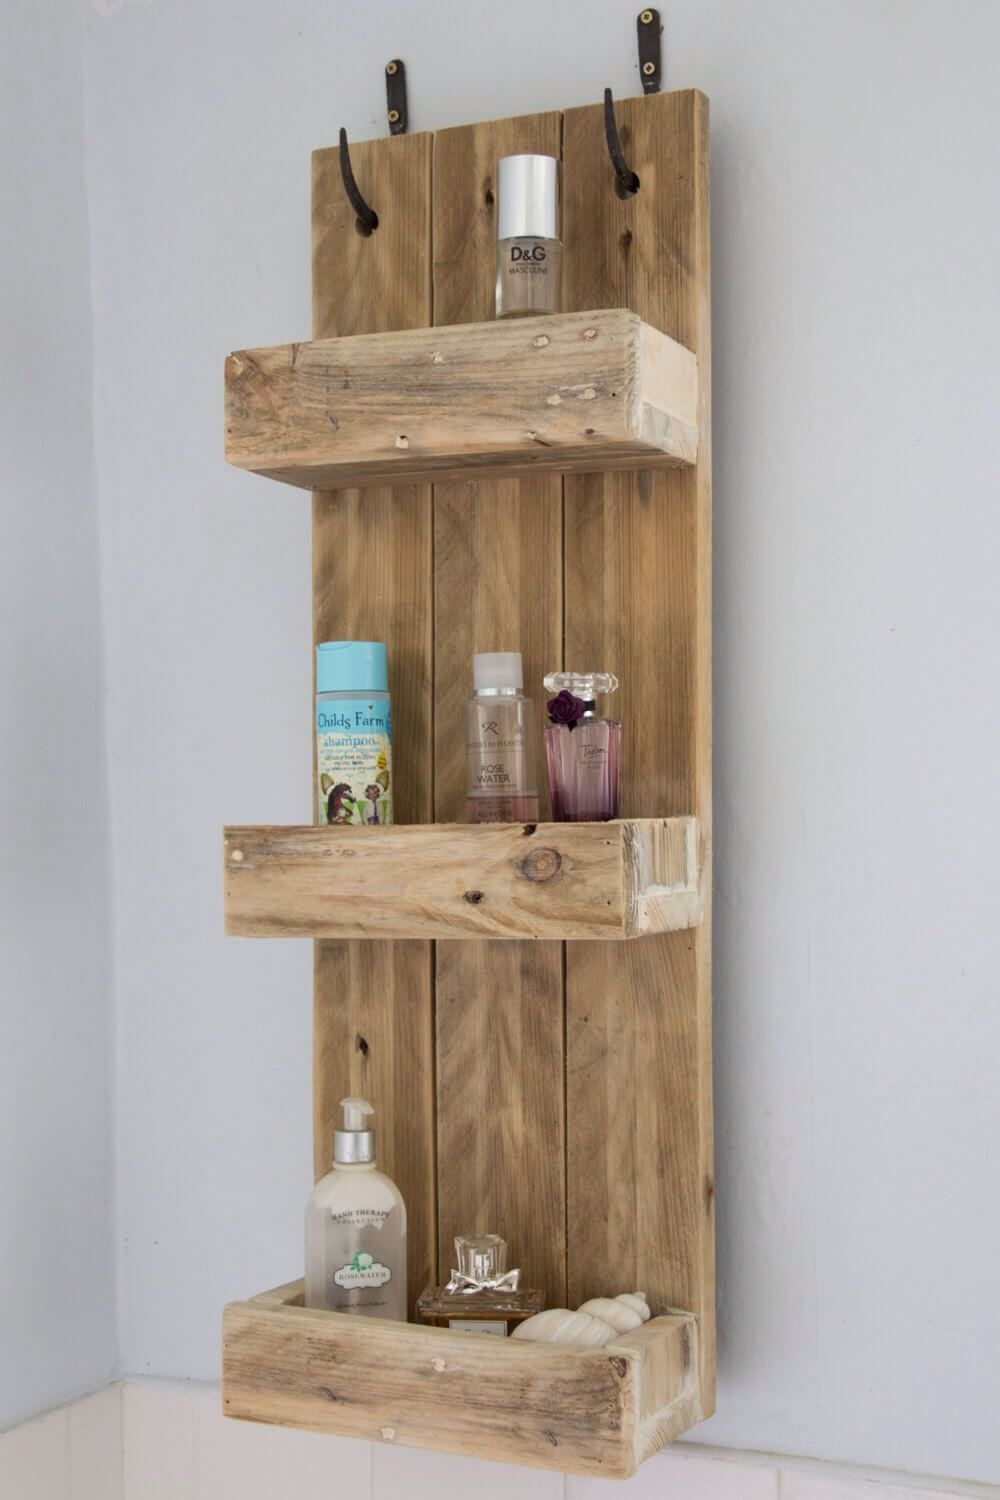 25 Pallet Project Ideas To Add Some Rustic Splendor To Your Bathroom Rustic Bathroom Shelves Bathroom Wood Shelves Diy Pallet Projects